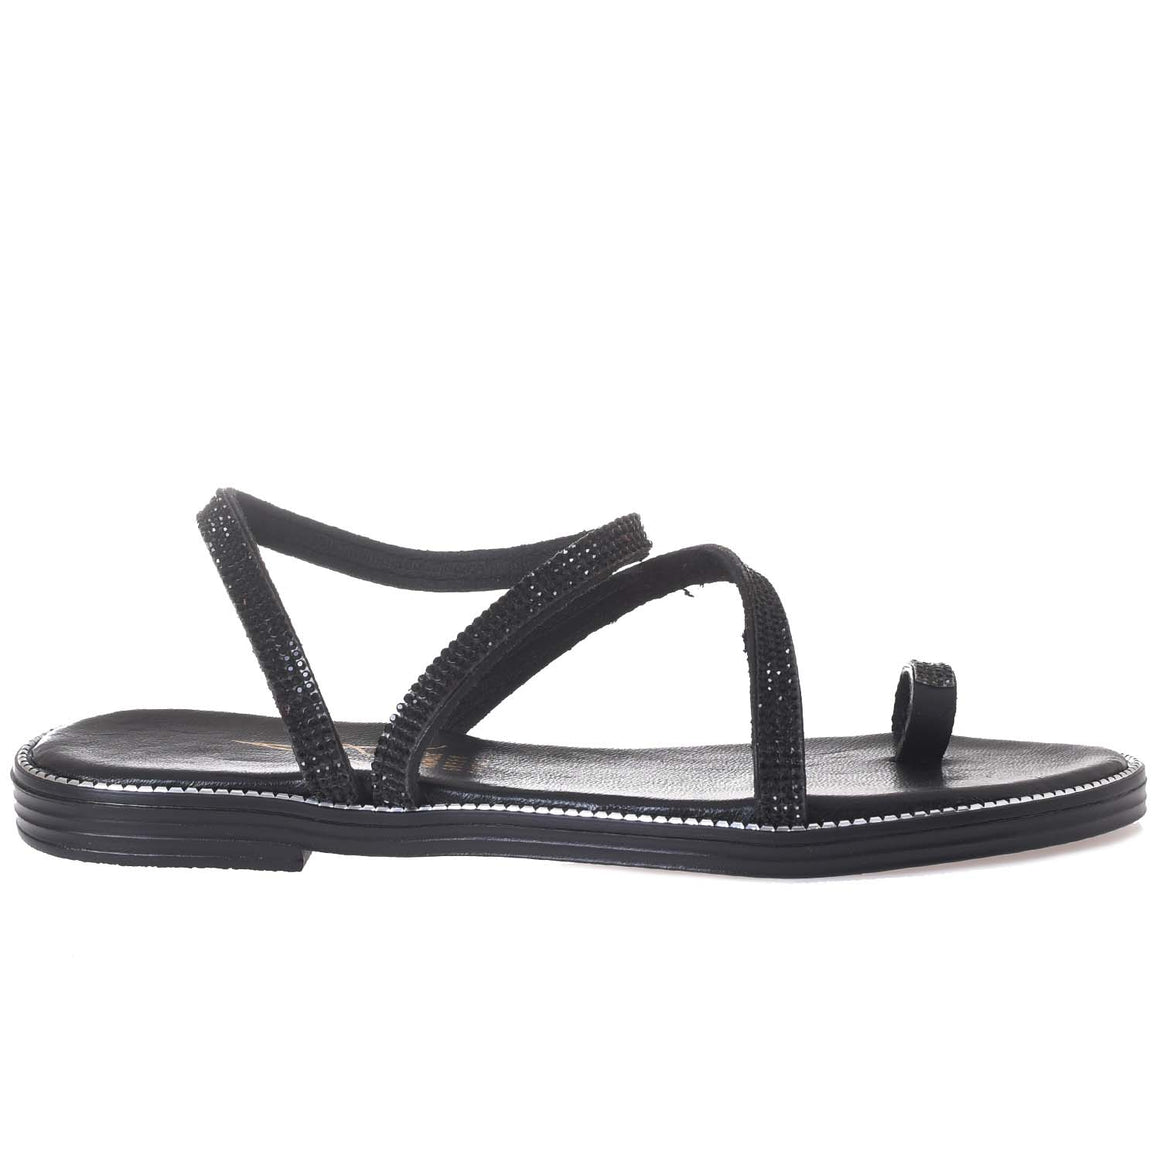 ATHENA GREEK A42-441-BLACK SANDAL